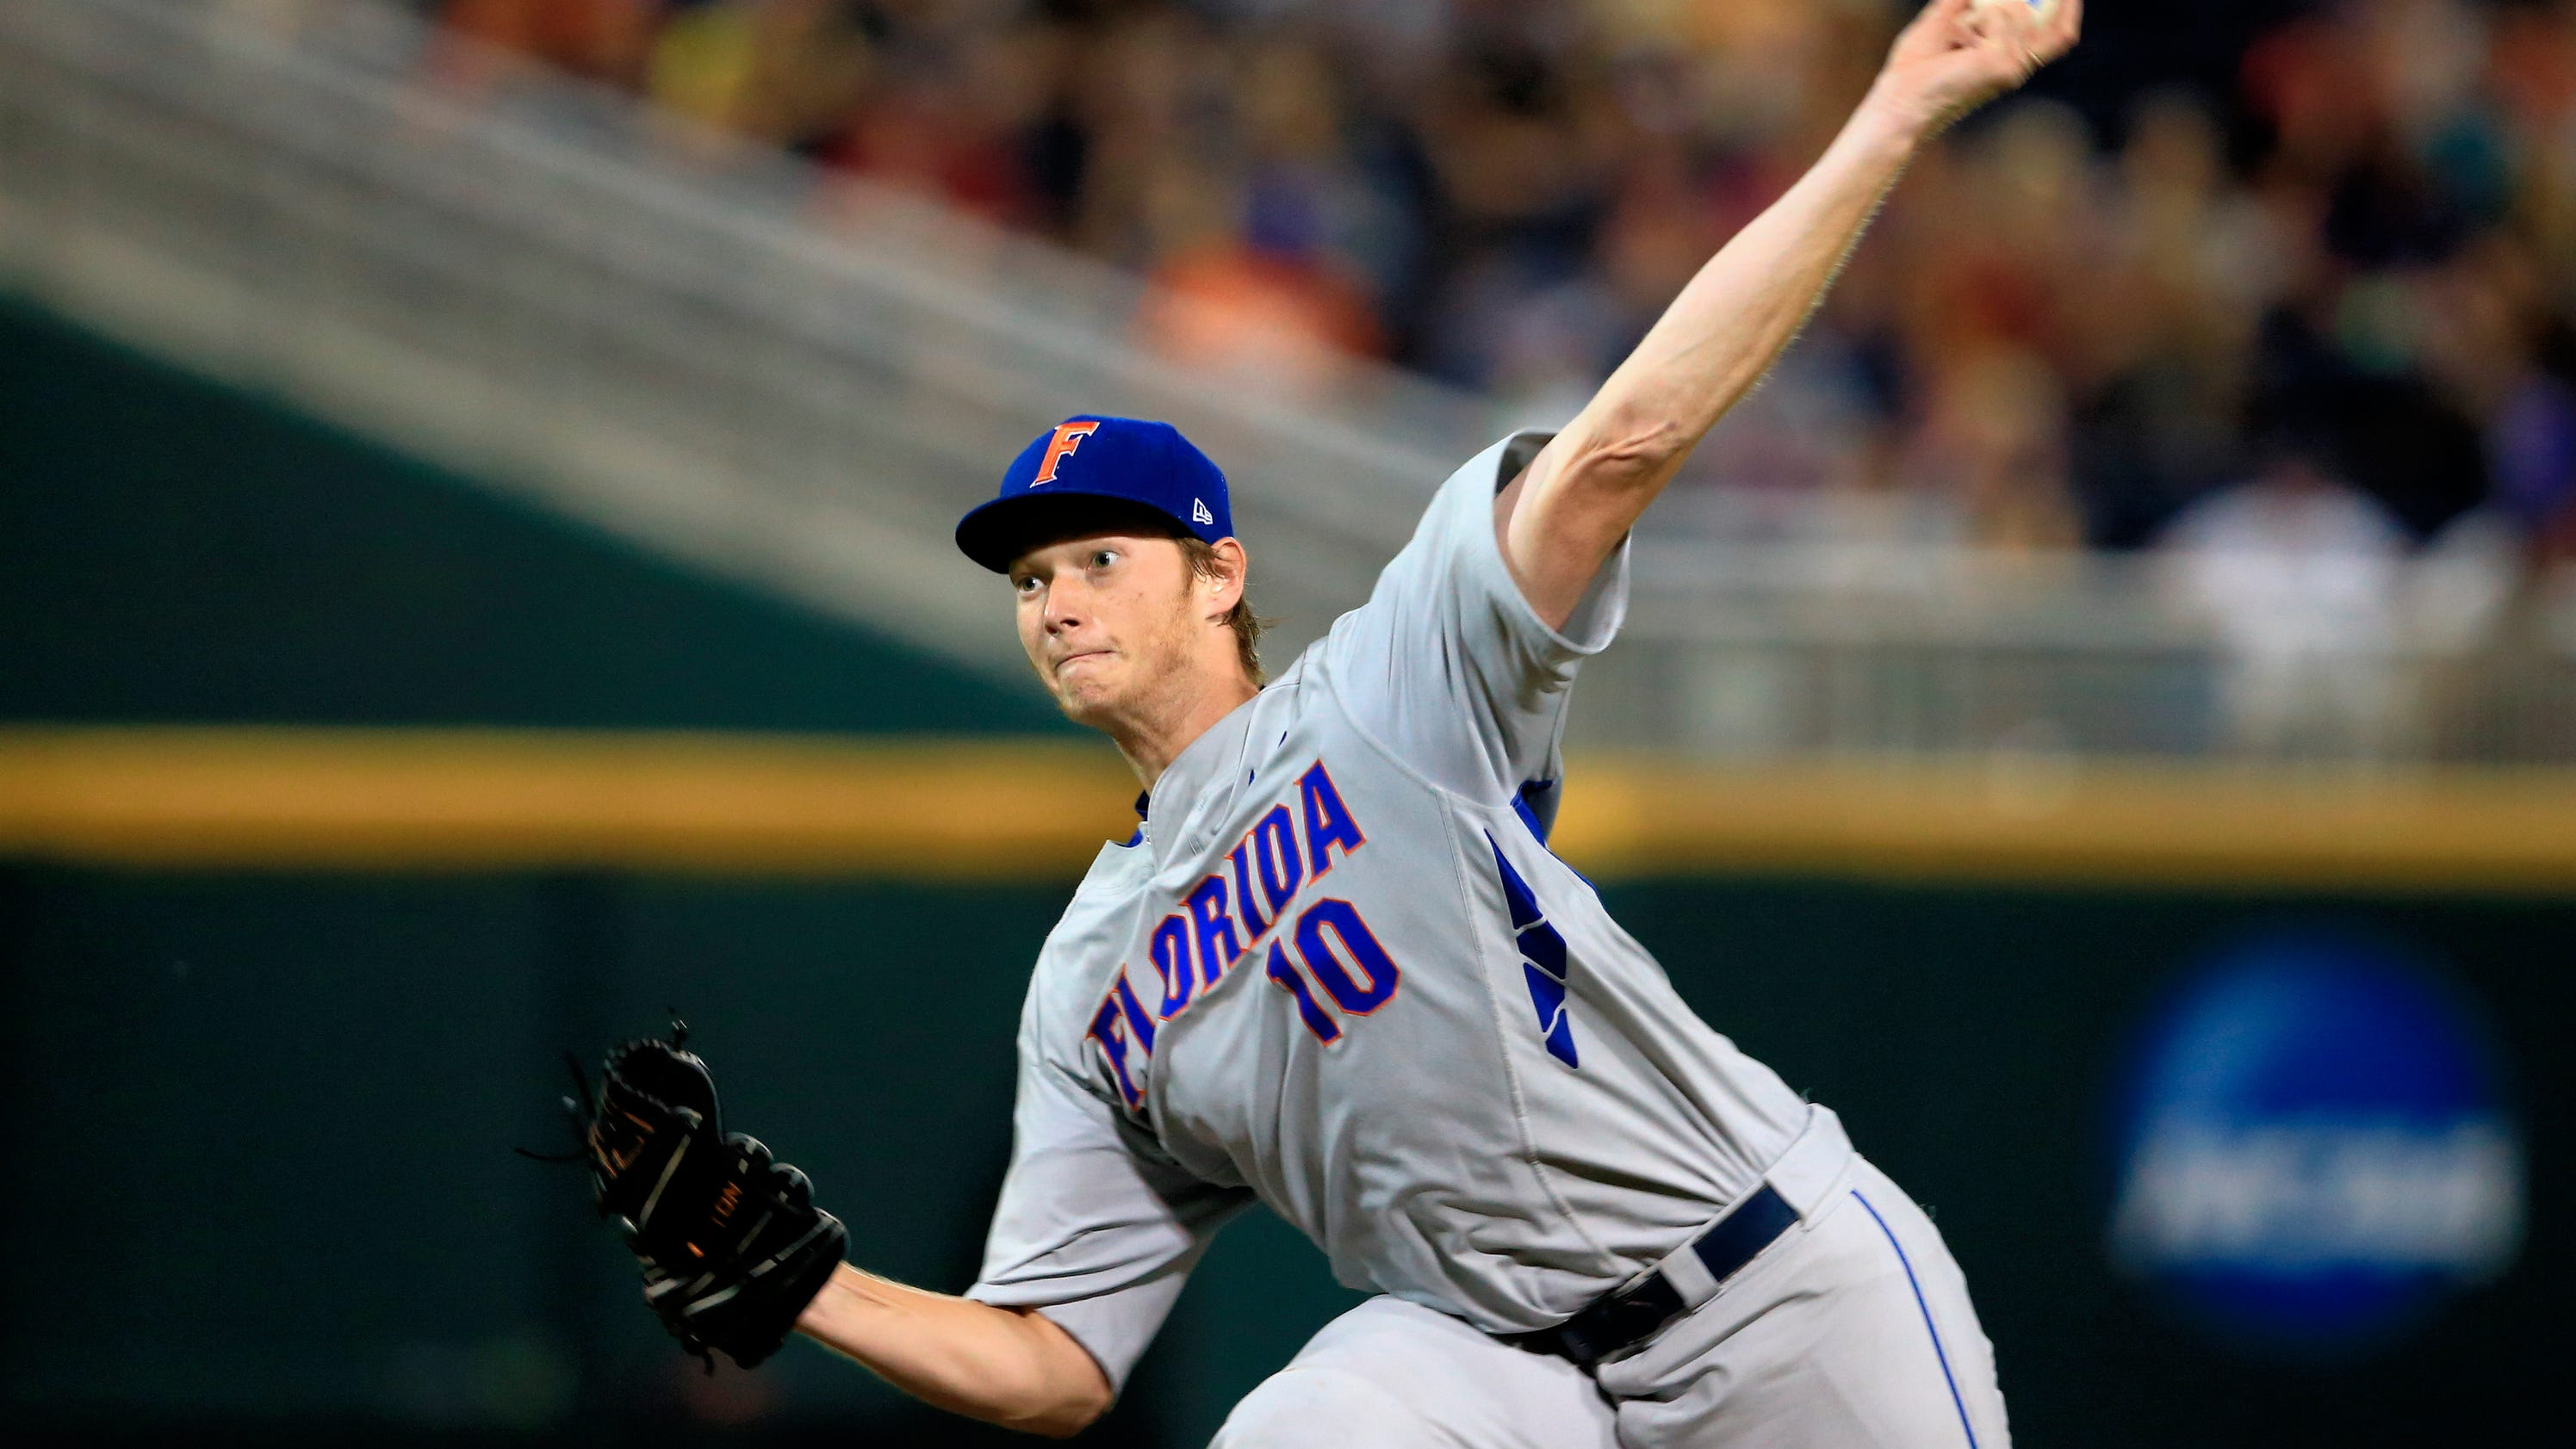 10 players to watch in college baseball in 2016